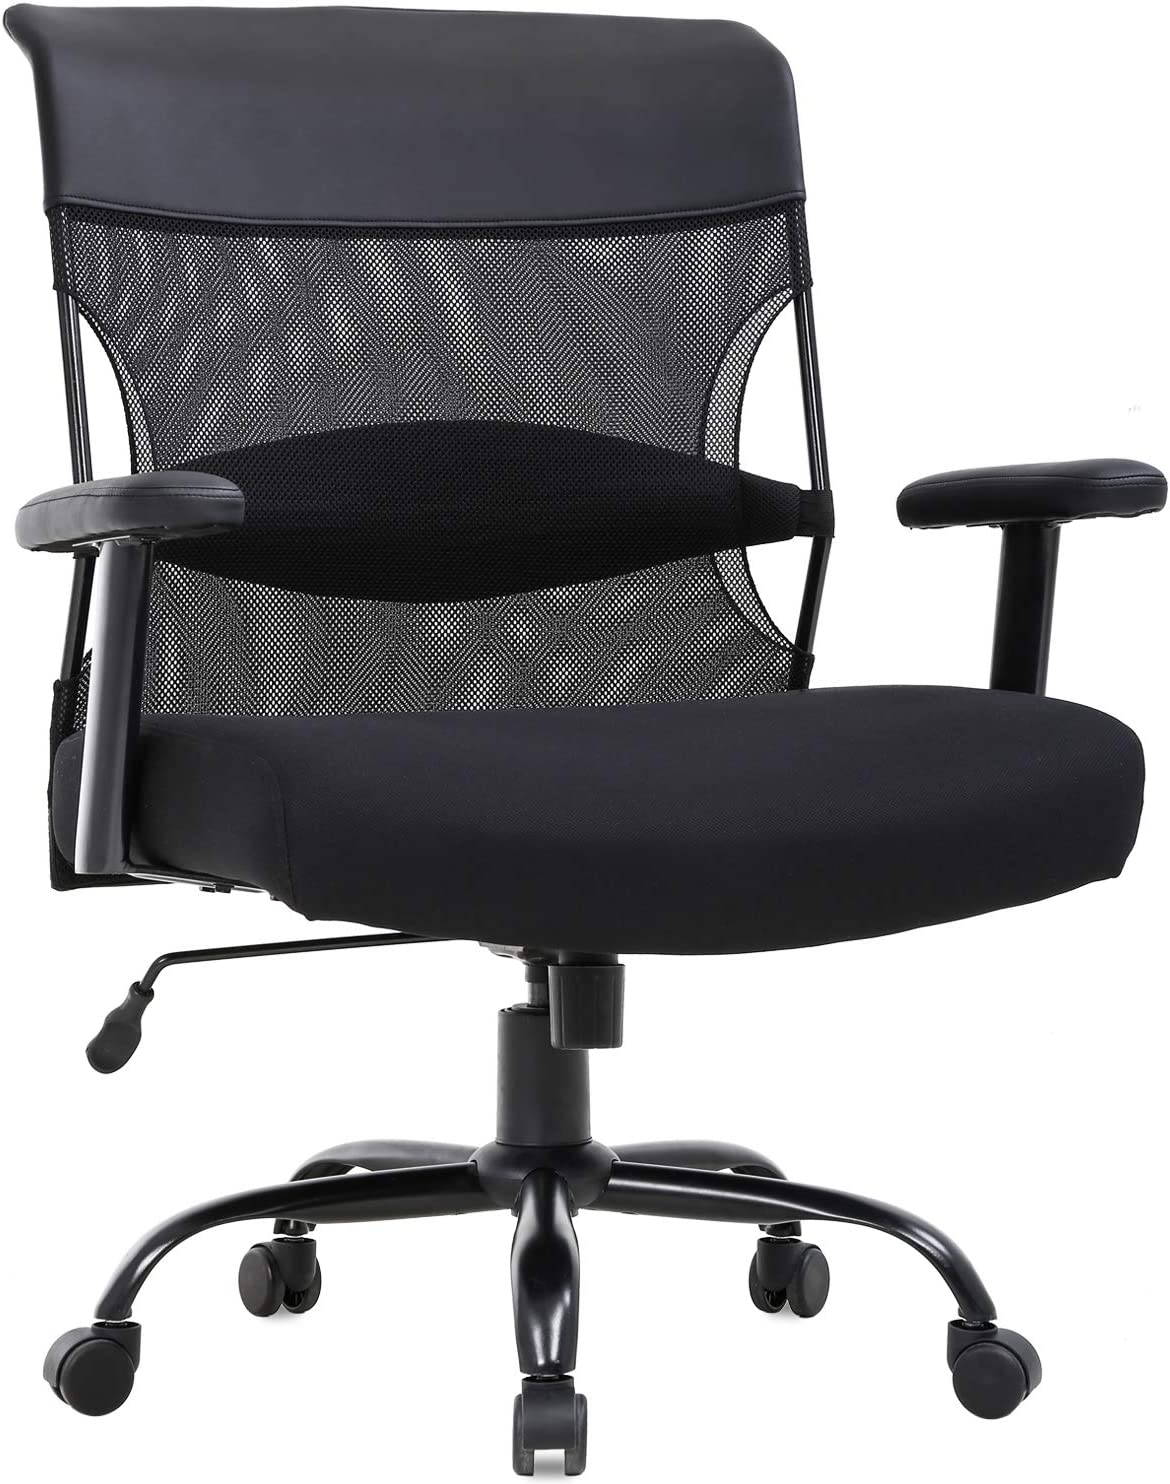 BestMassage Tall and Big Office Chair review